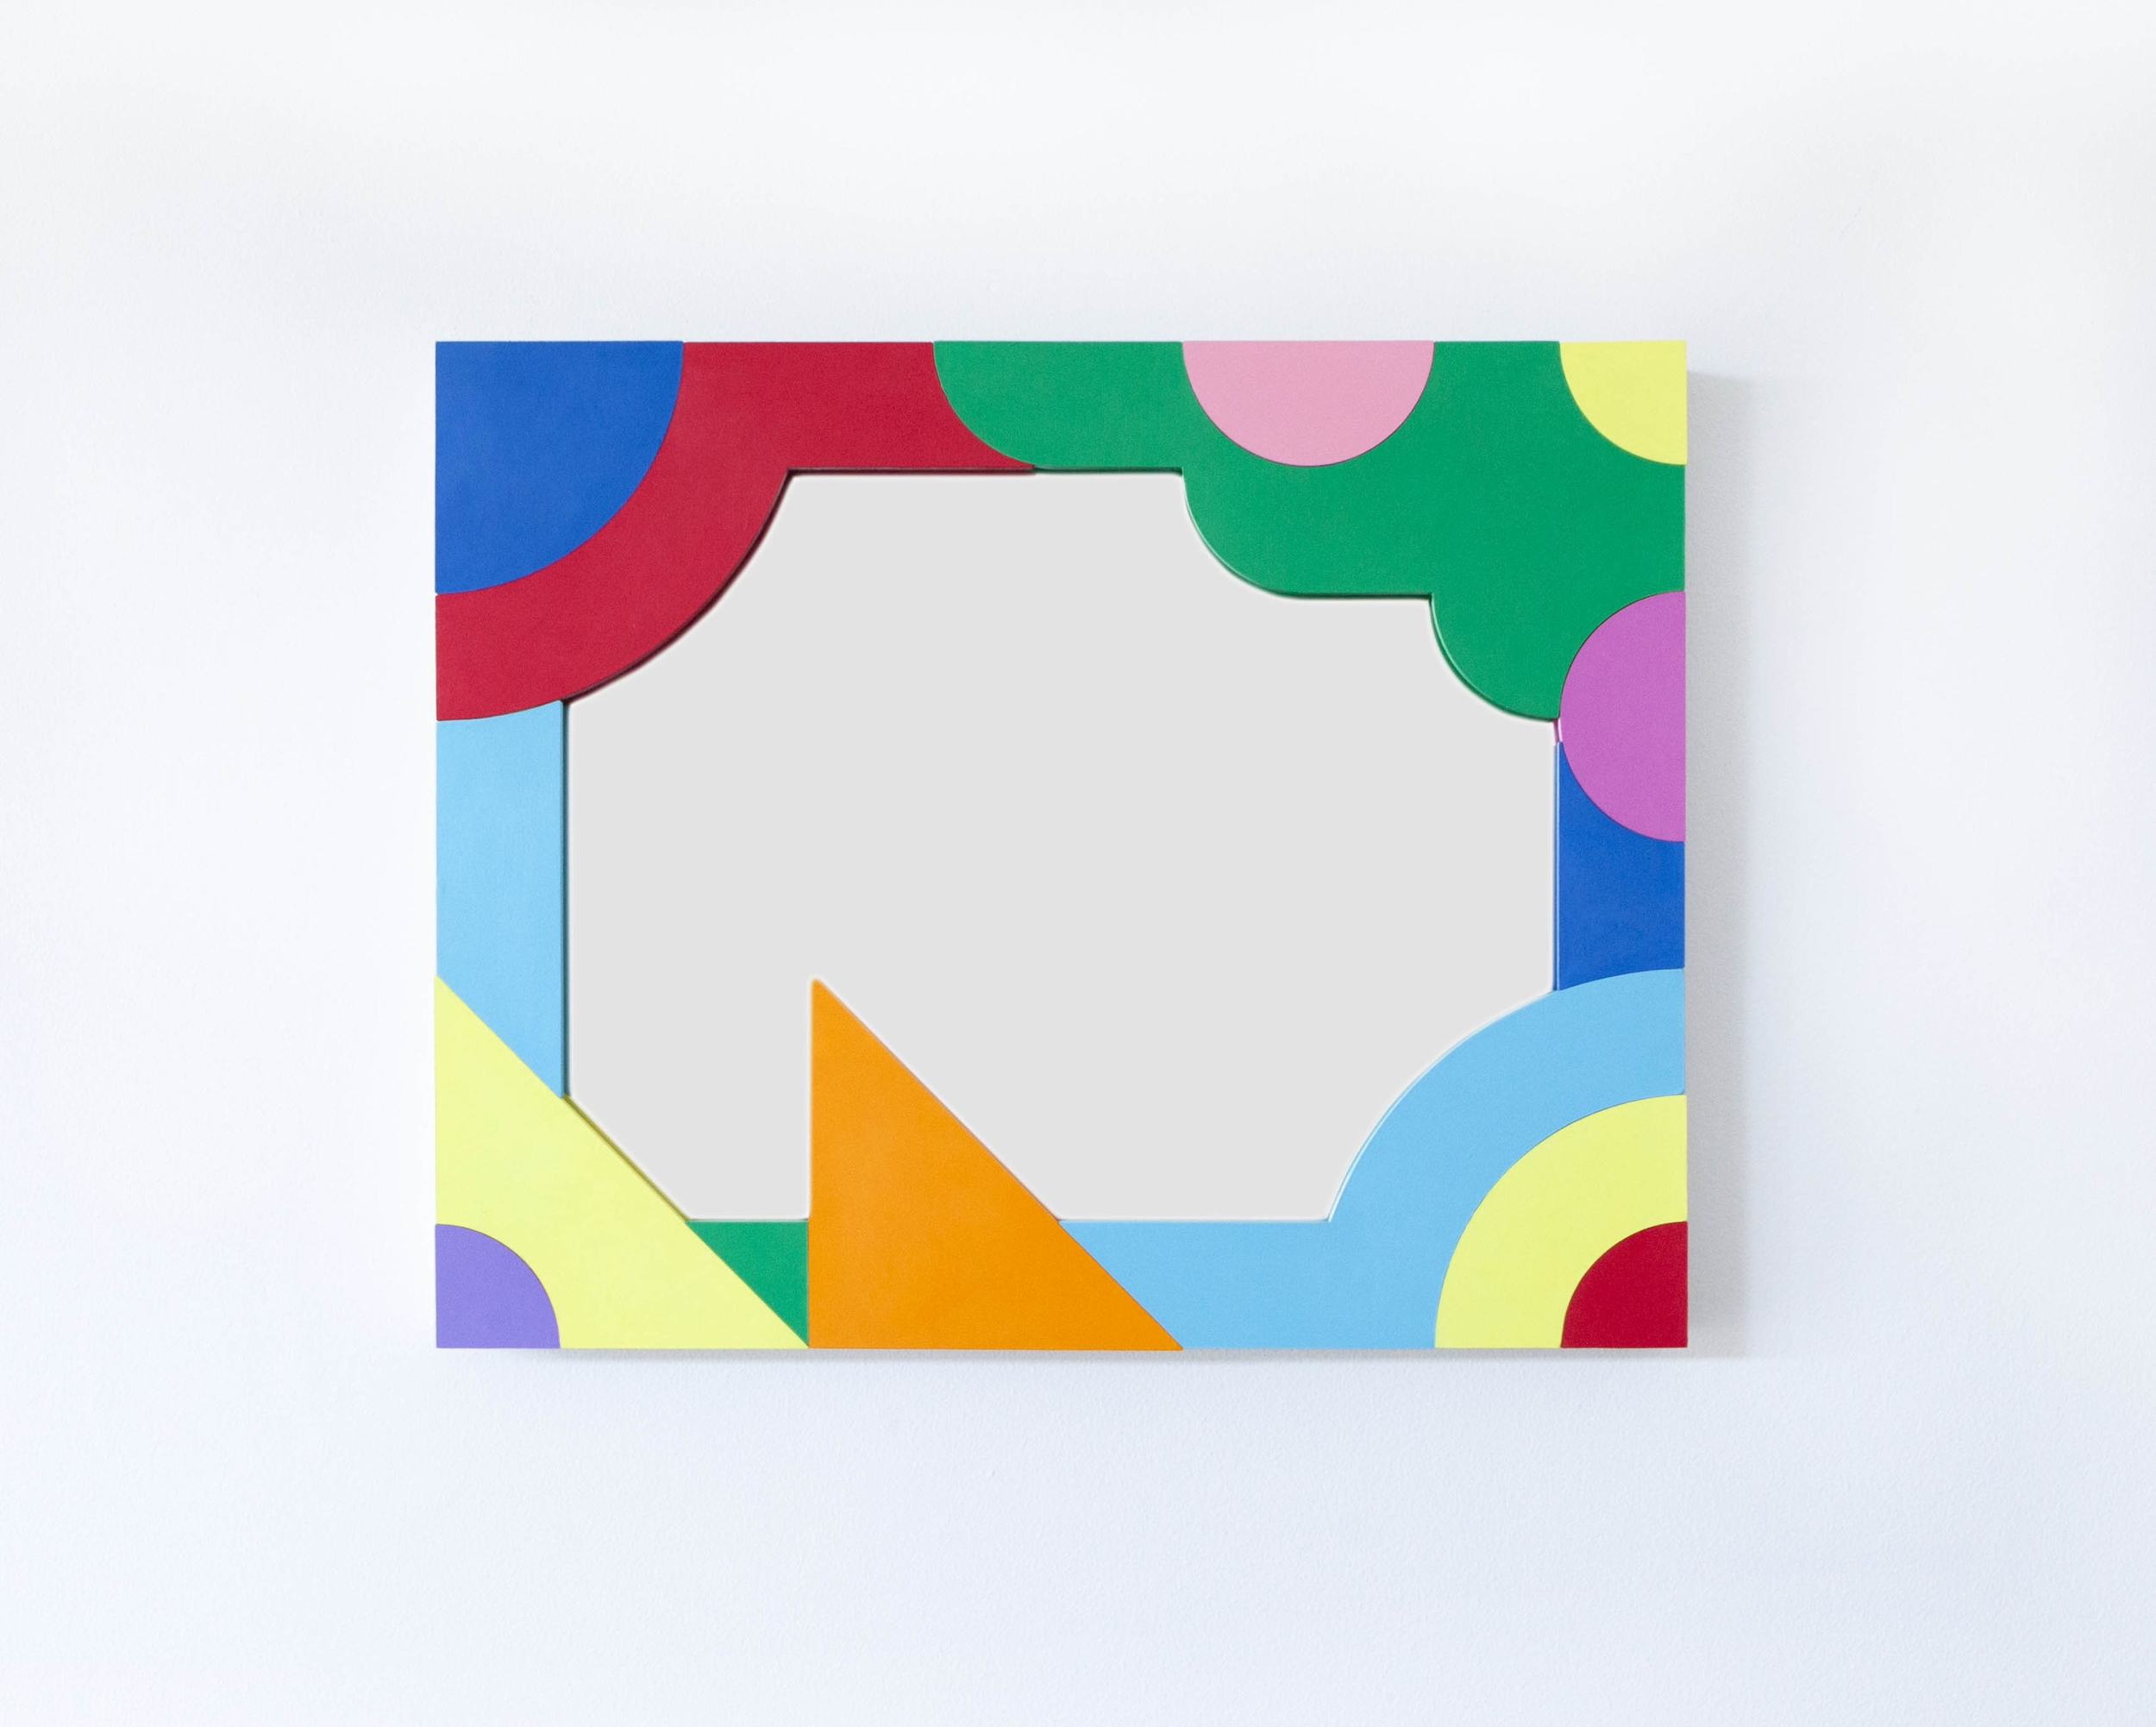 Mirror with a fruit tree and other abstract shapes #2